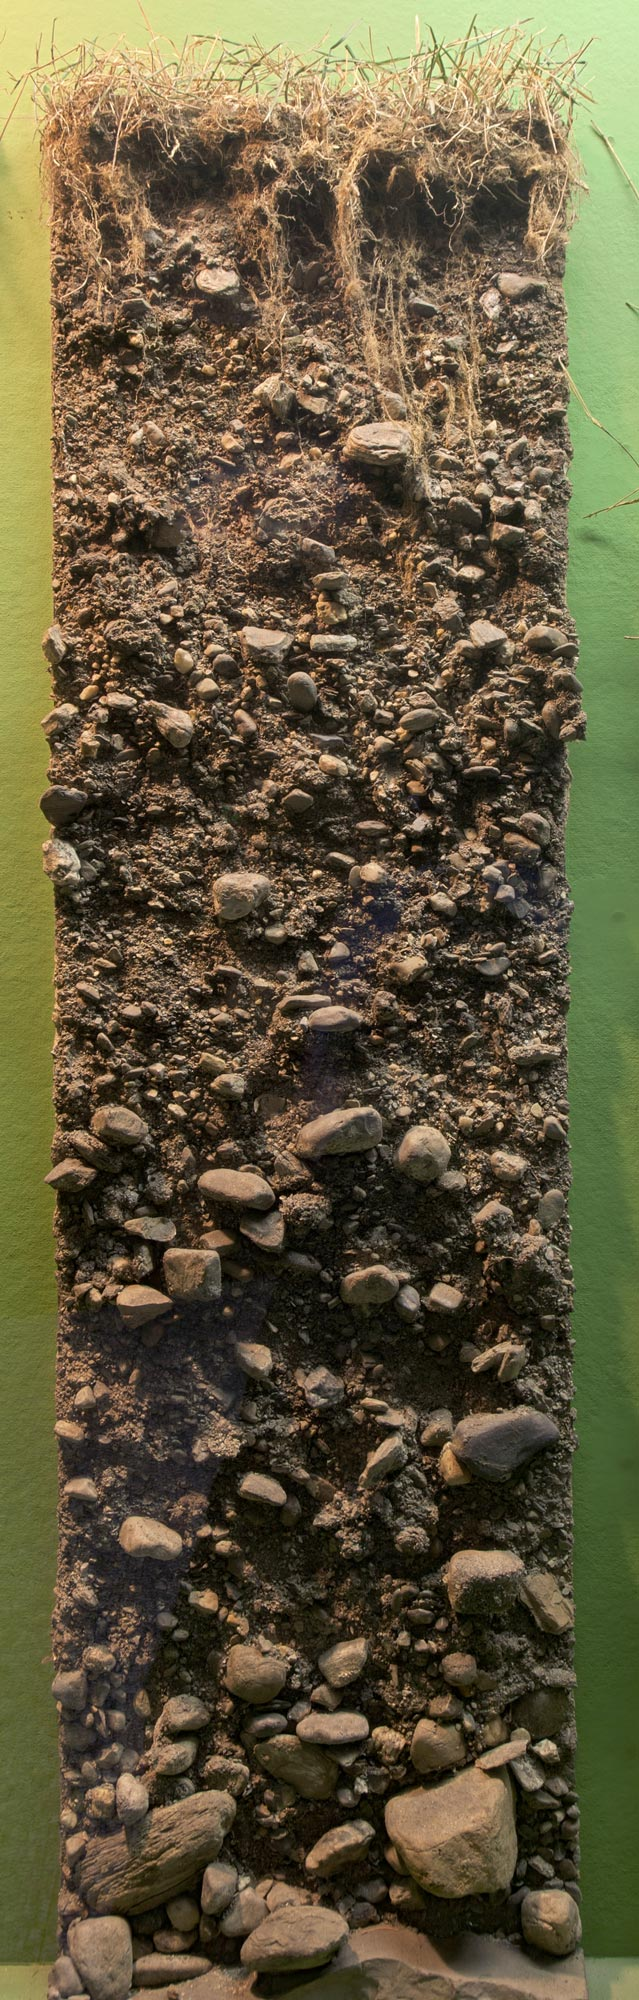 Soil profile of stratified glacial till